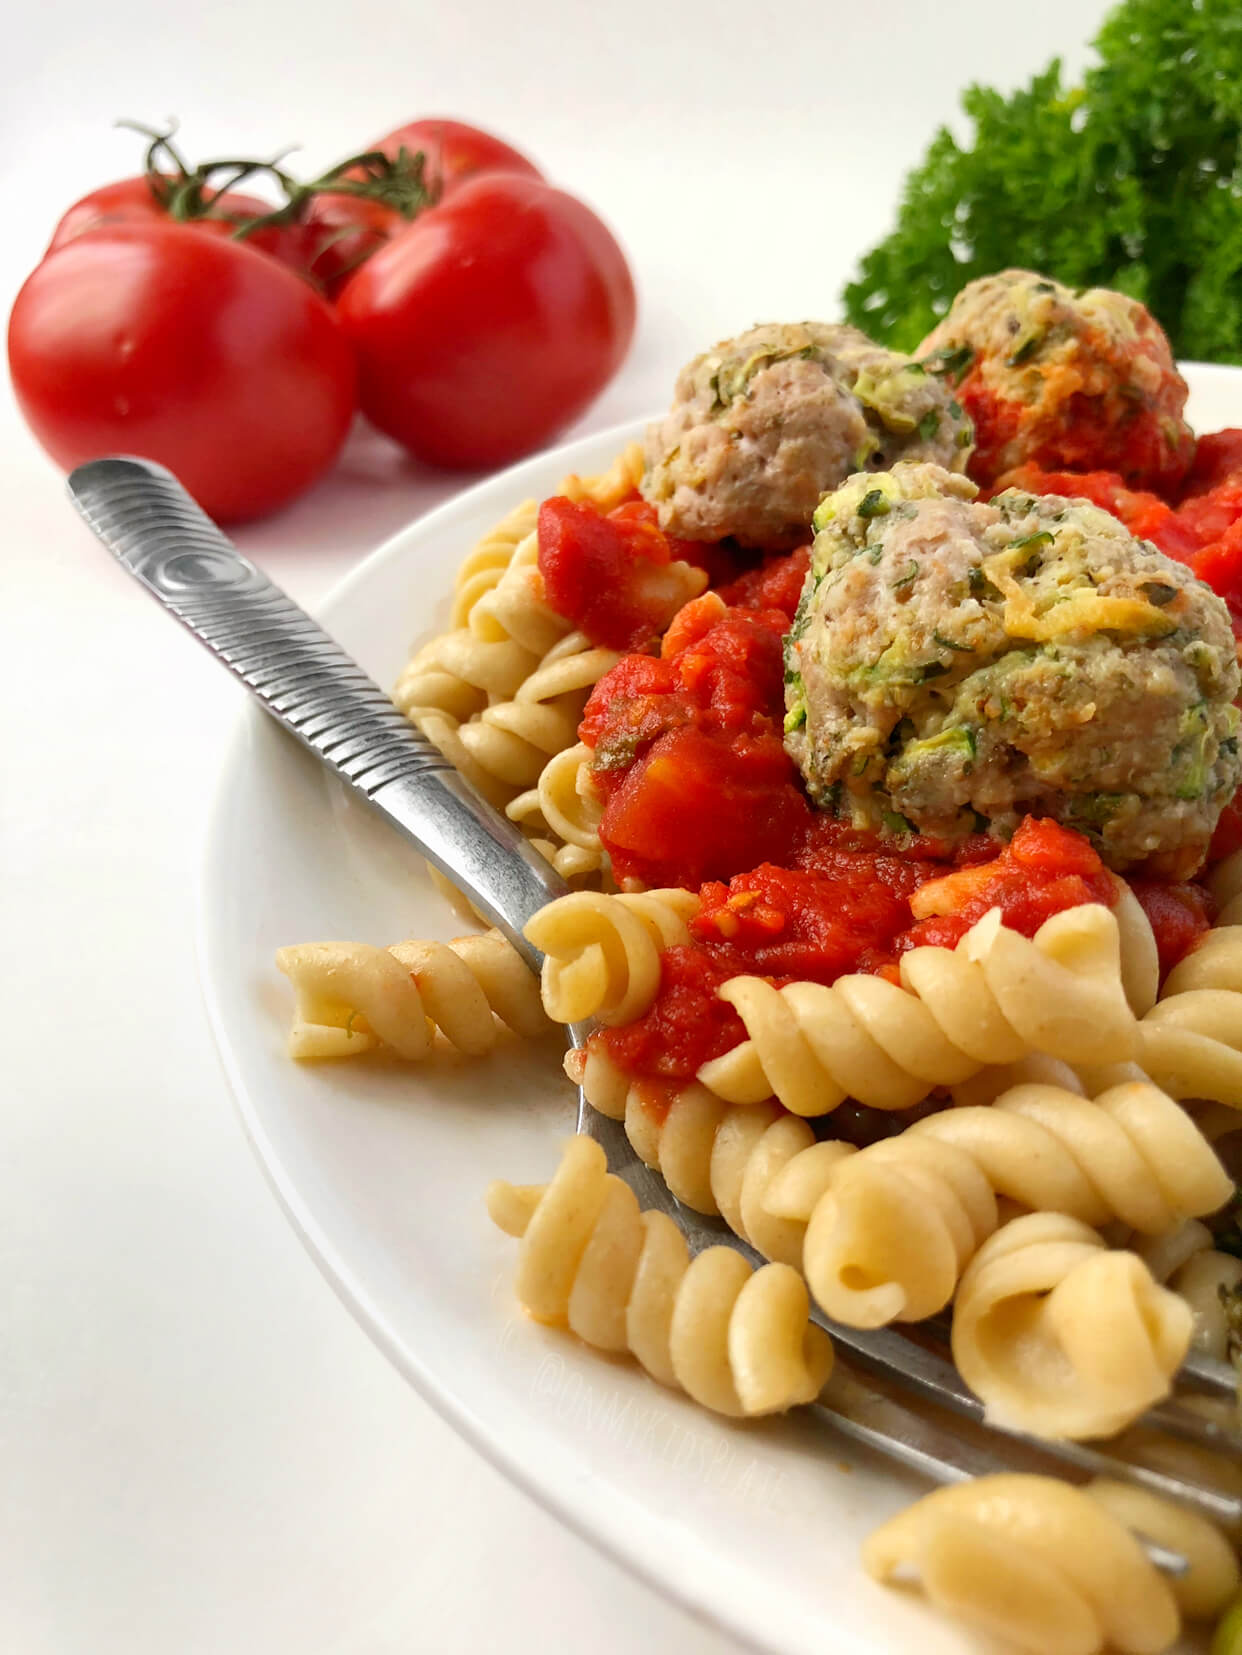 A plate of meatballs, pasta and tomato sauce with tomatoes and parsely in the background